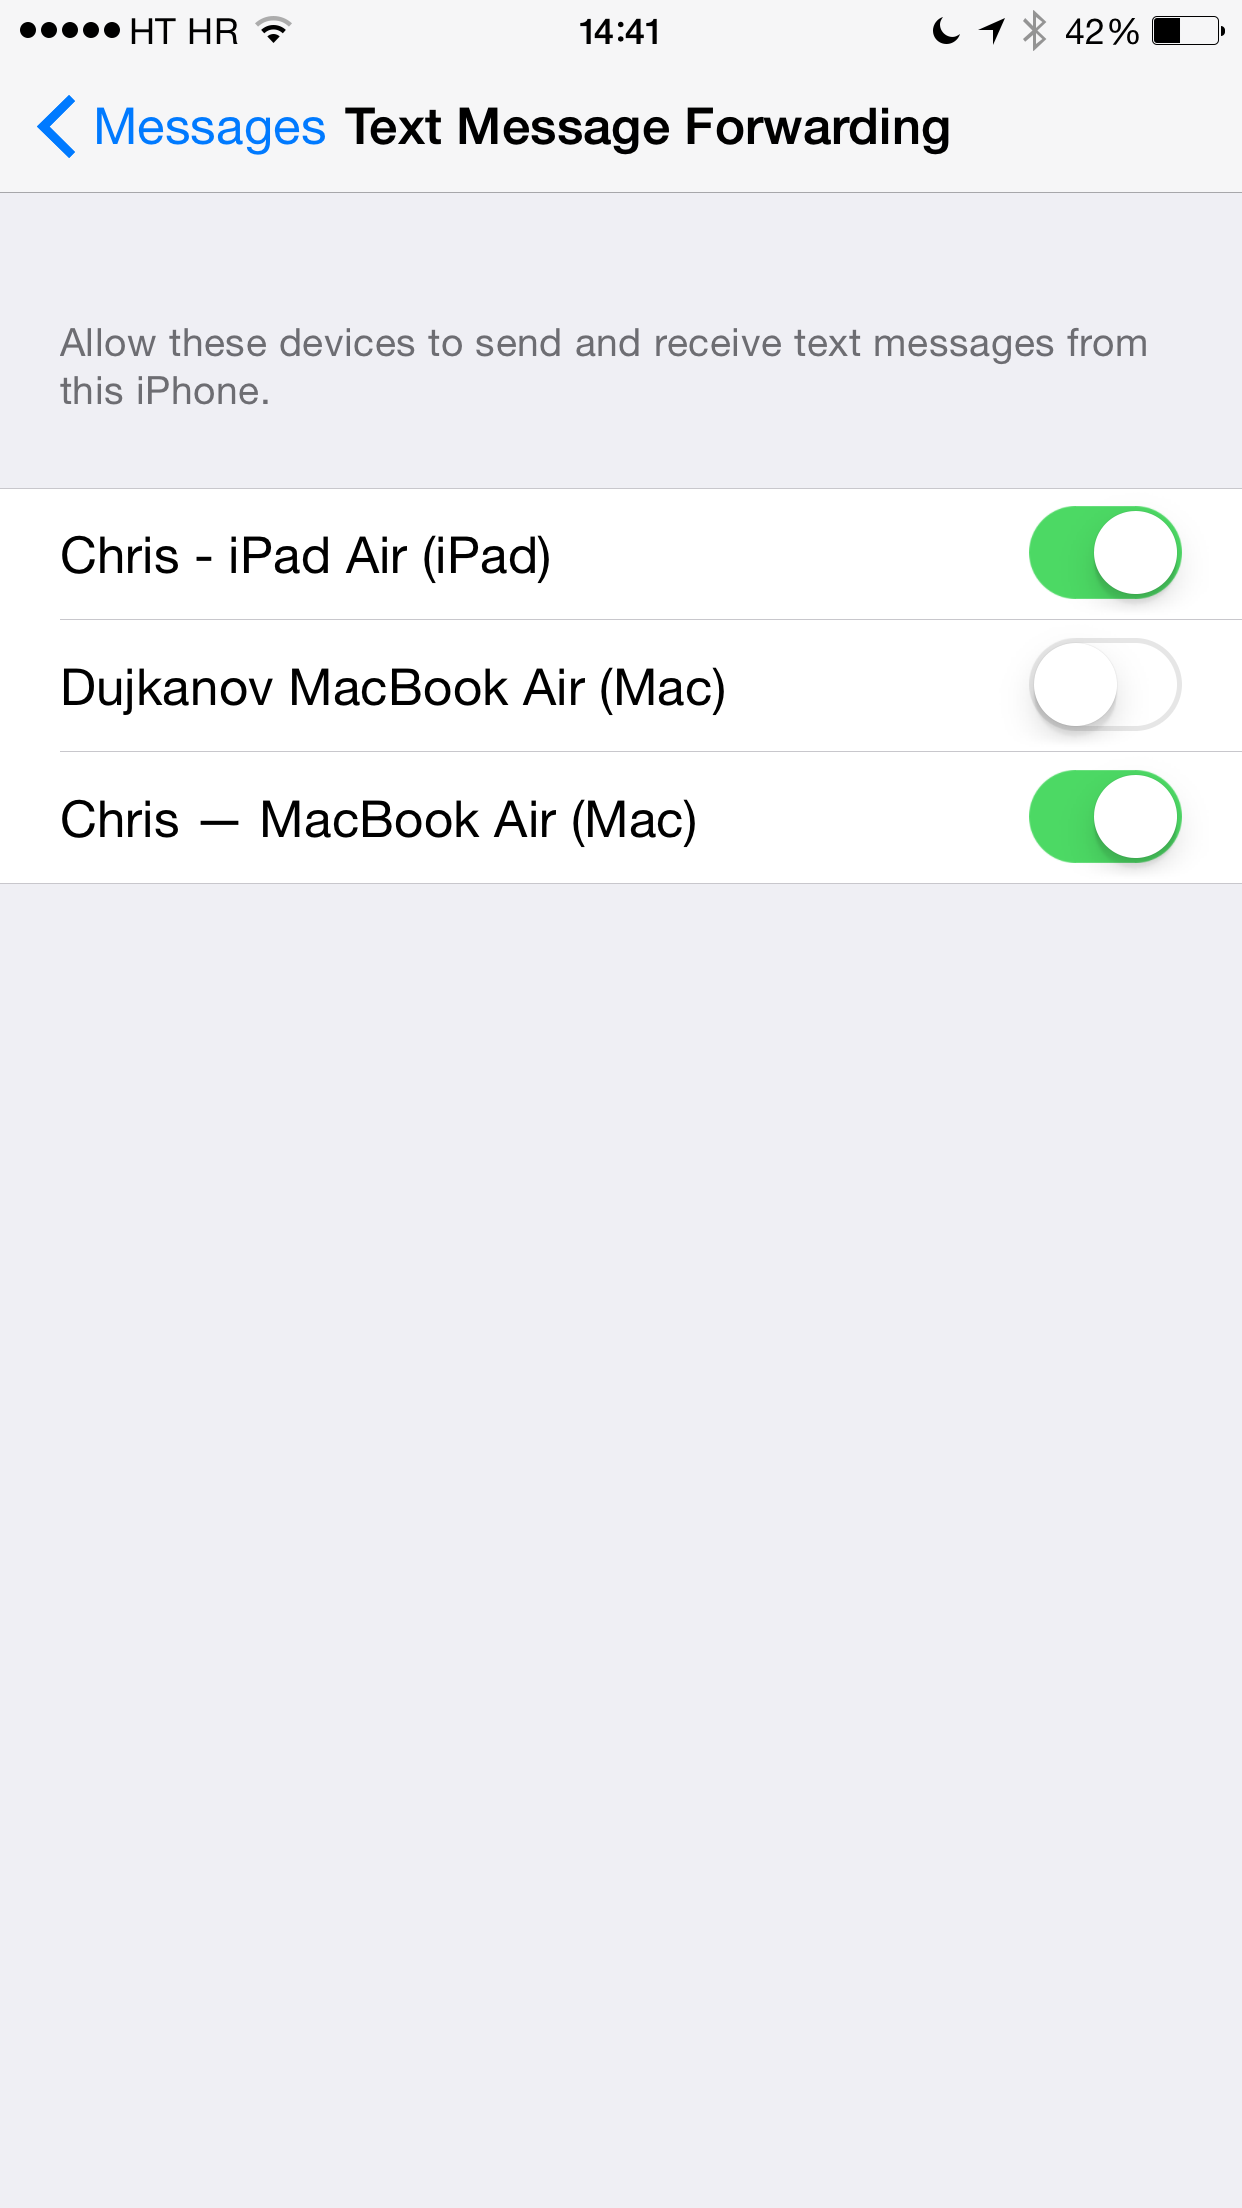 iOS 8 (Messages, Text Message Forwarding 006)